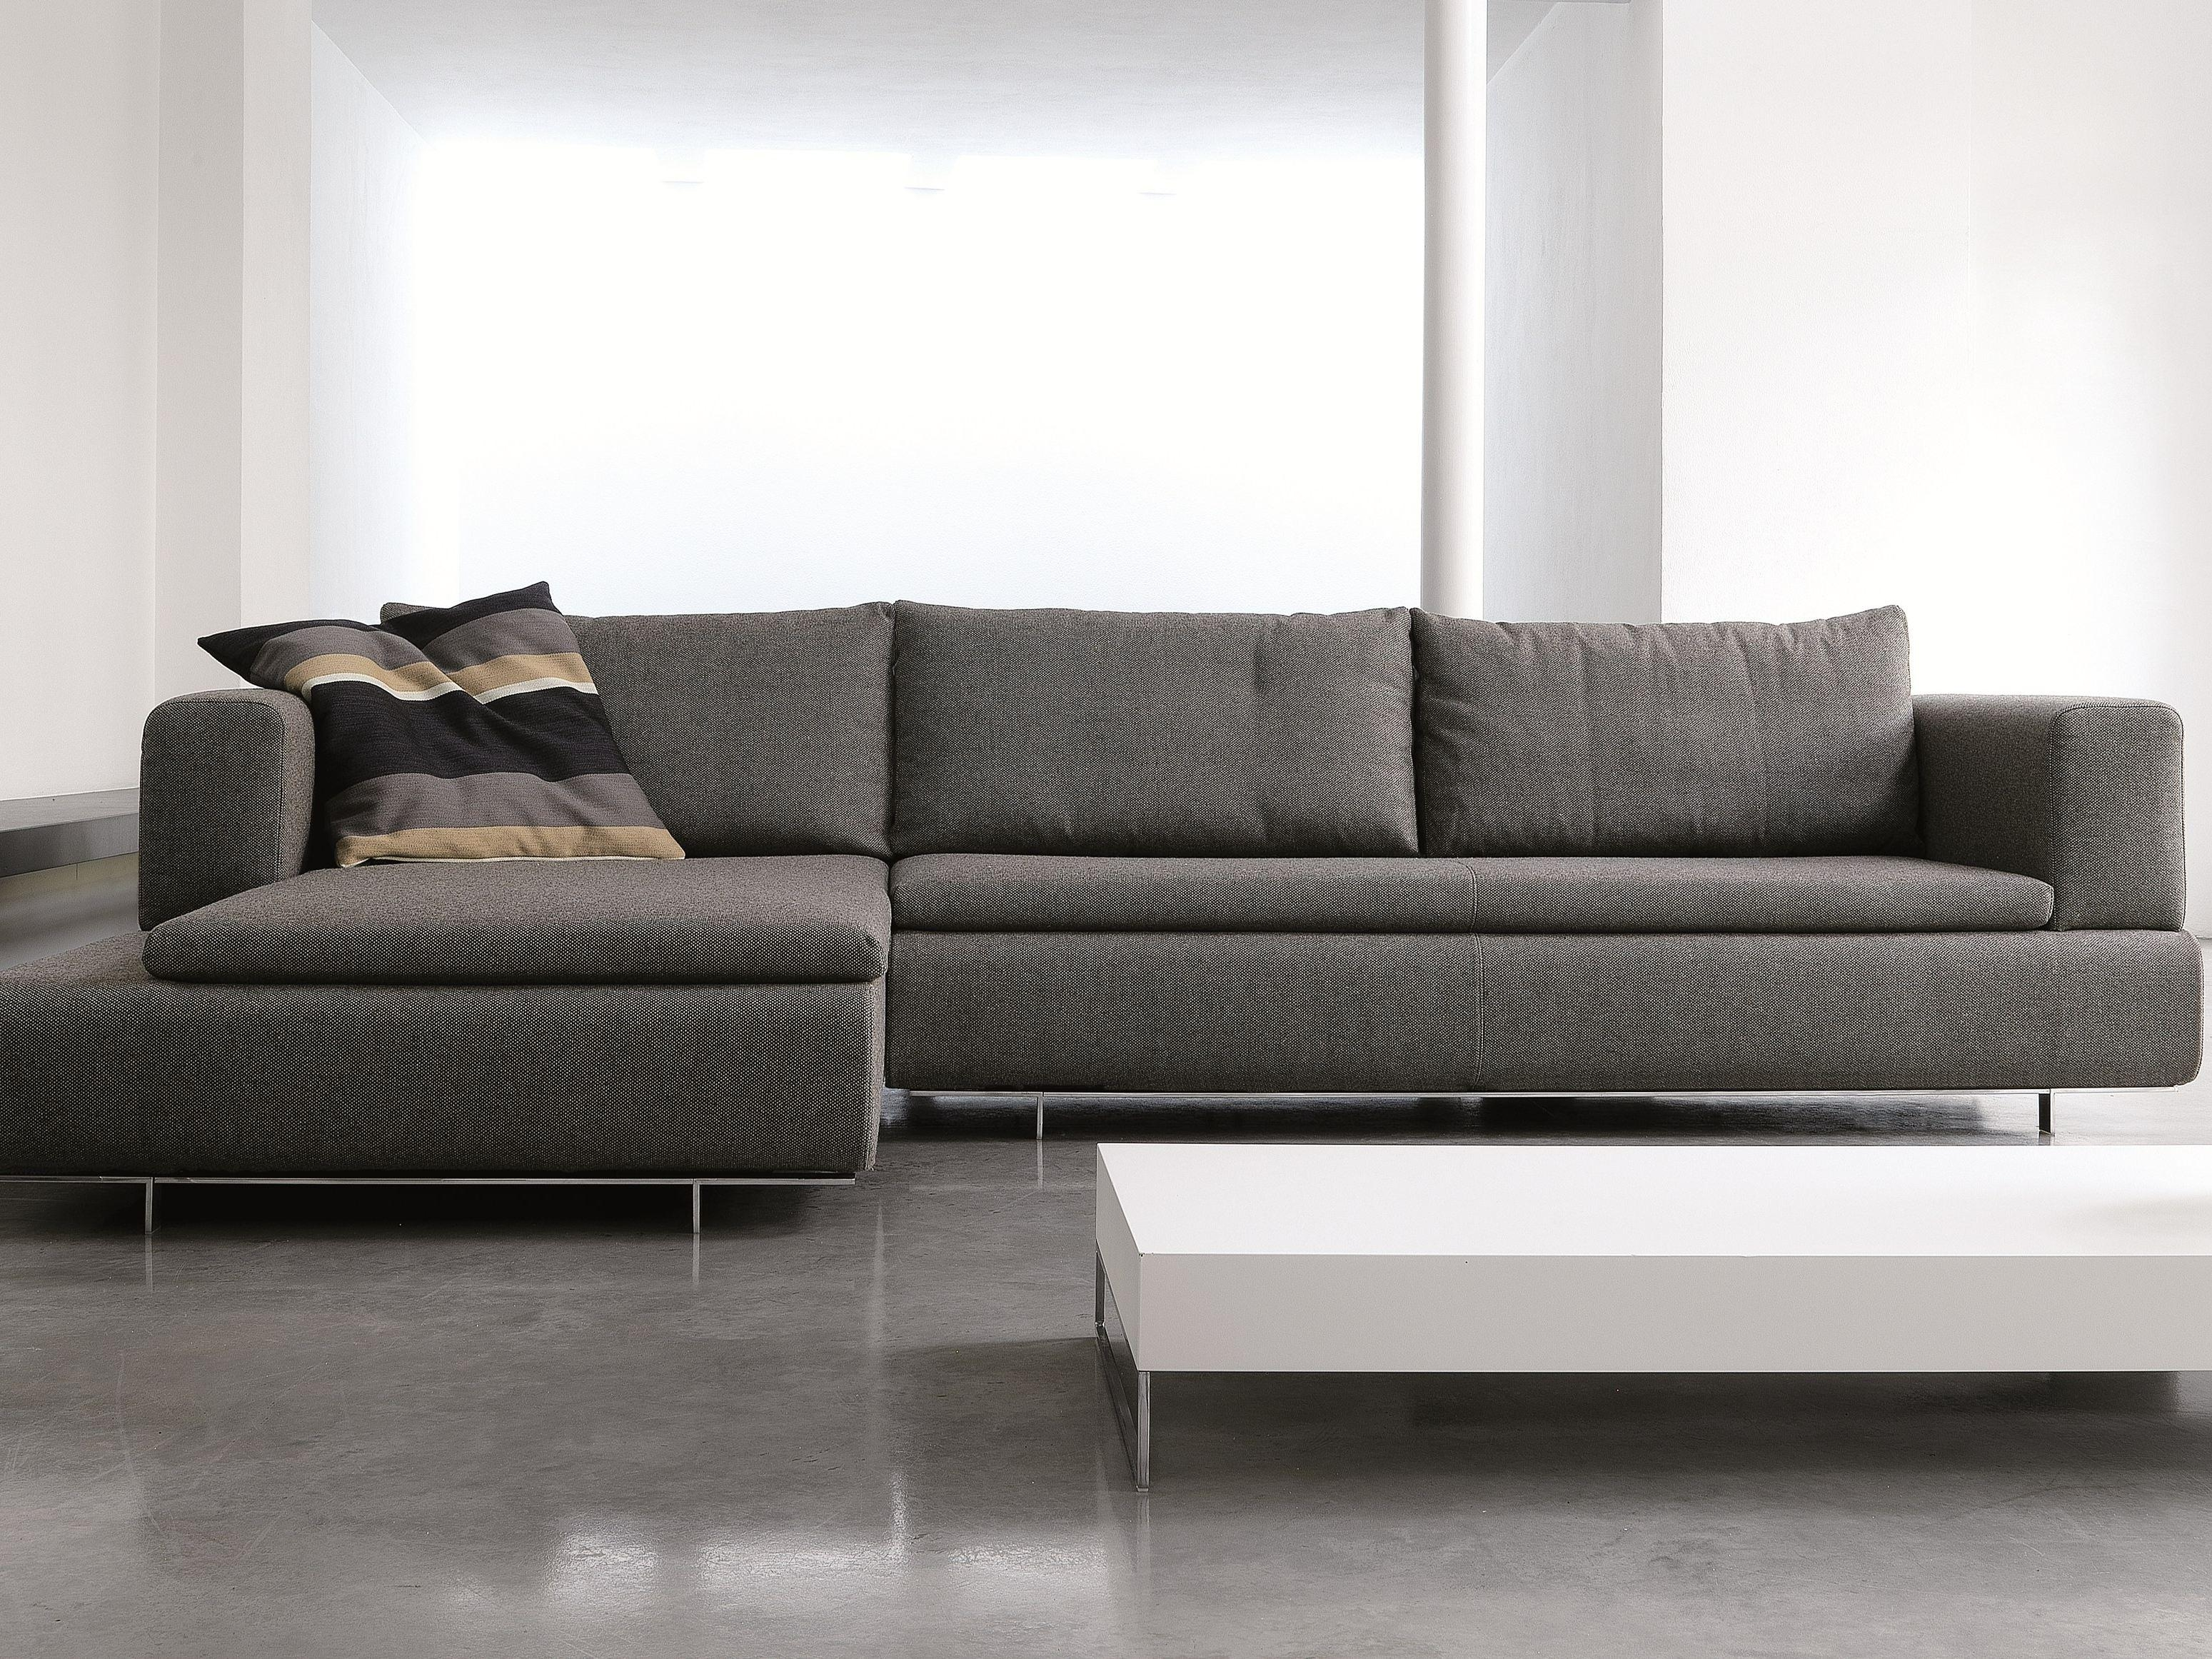 485 Forum | Sofa With Chaise Longuevibieffe Design Gianluigi pertaining to Sofas With Chaise Longue